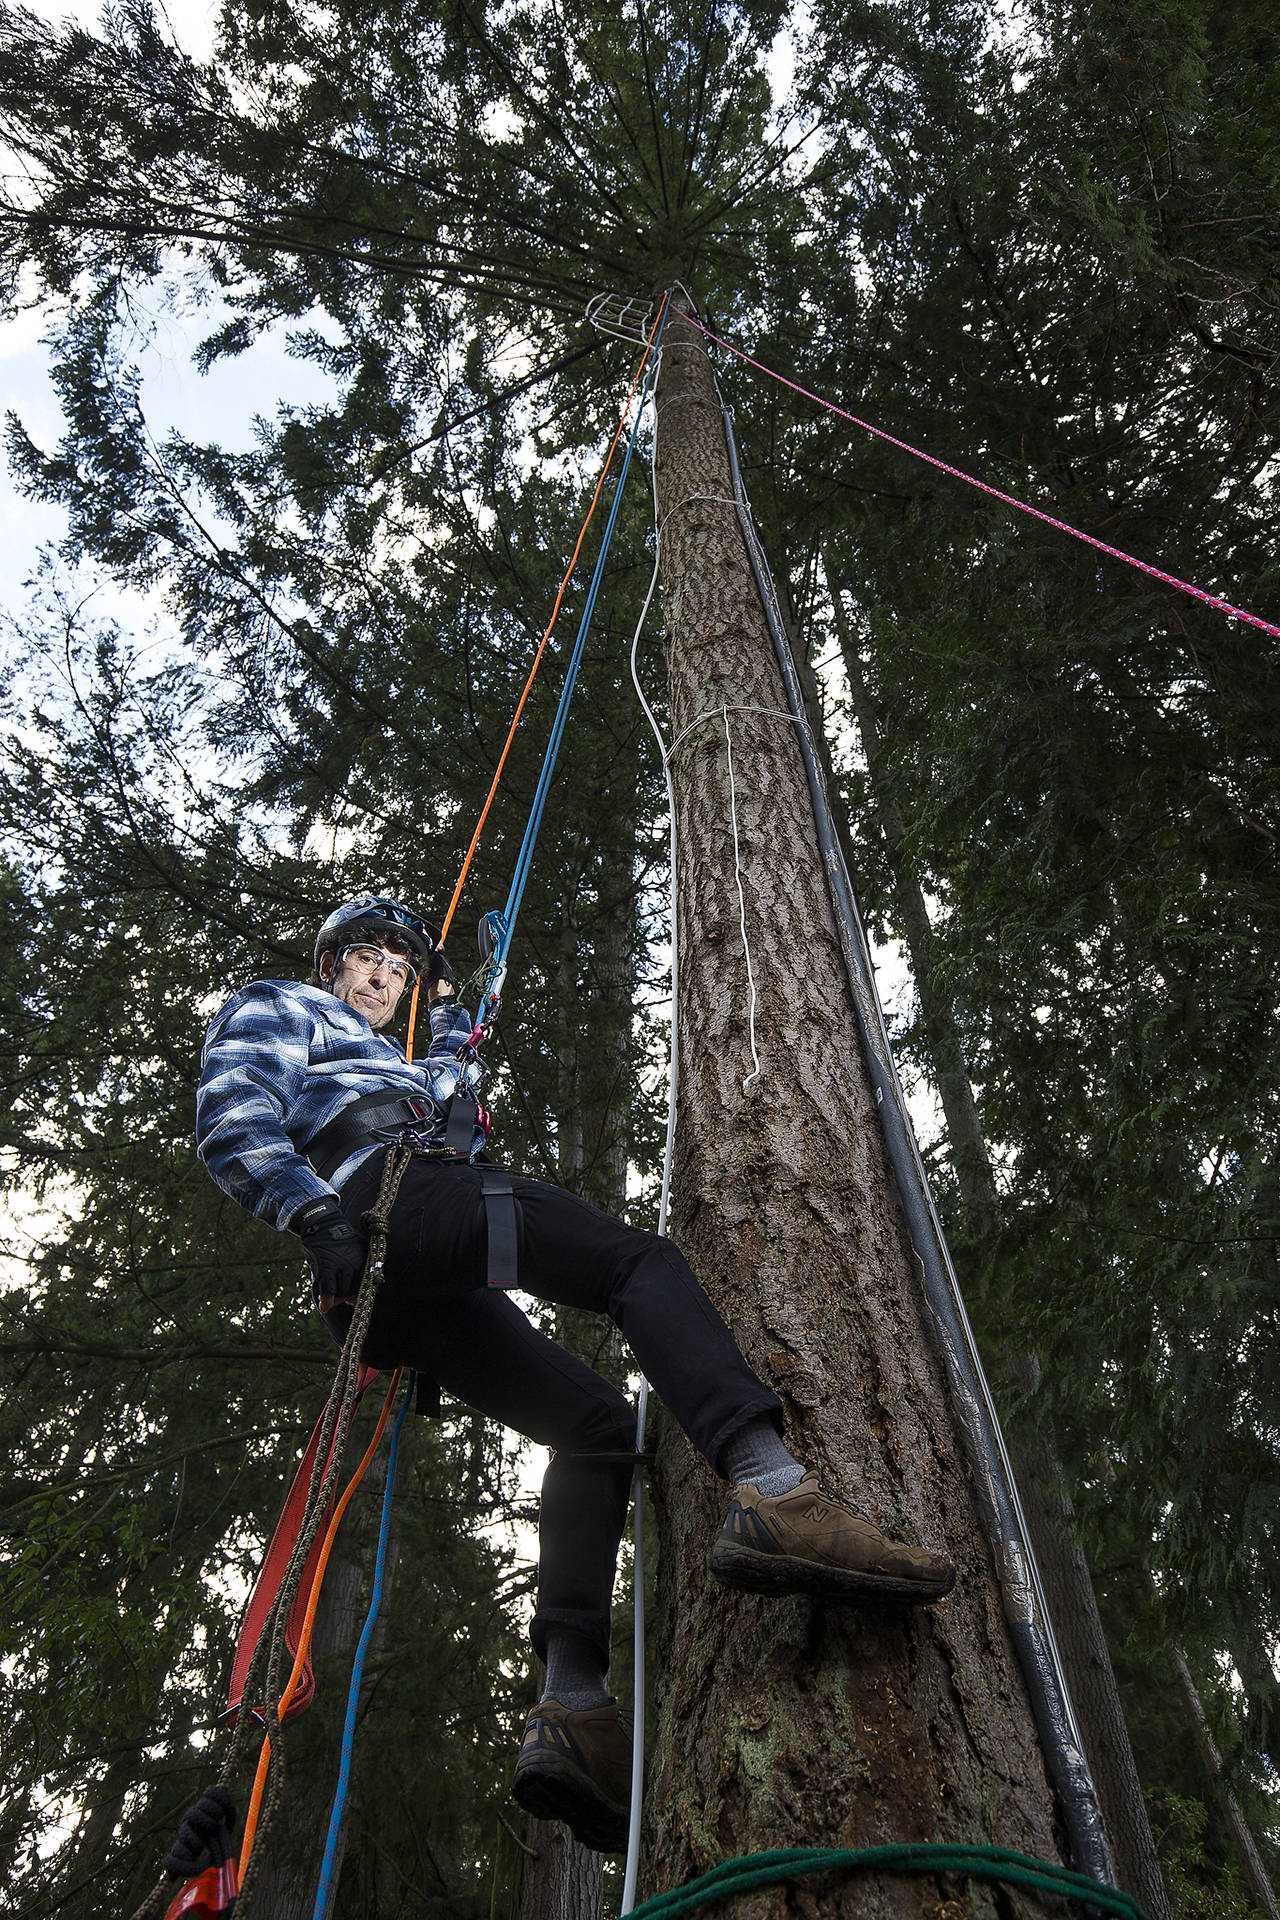 It takes ropes and some climbing for Scott Greeley to work on his energy-saving distillation system, built 43 feet up in Edmonds. (Andy Bronson / The Herald)